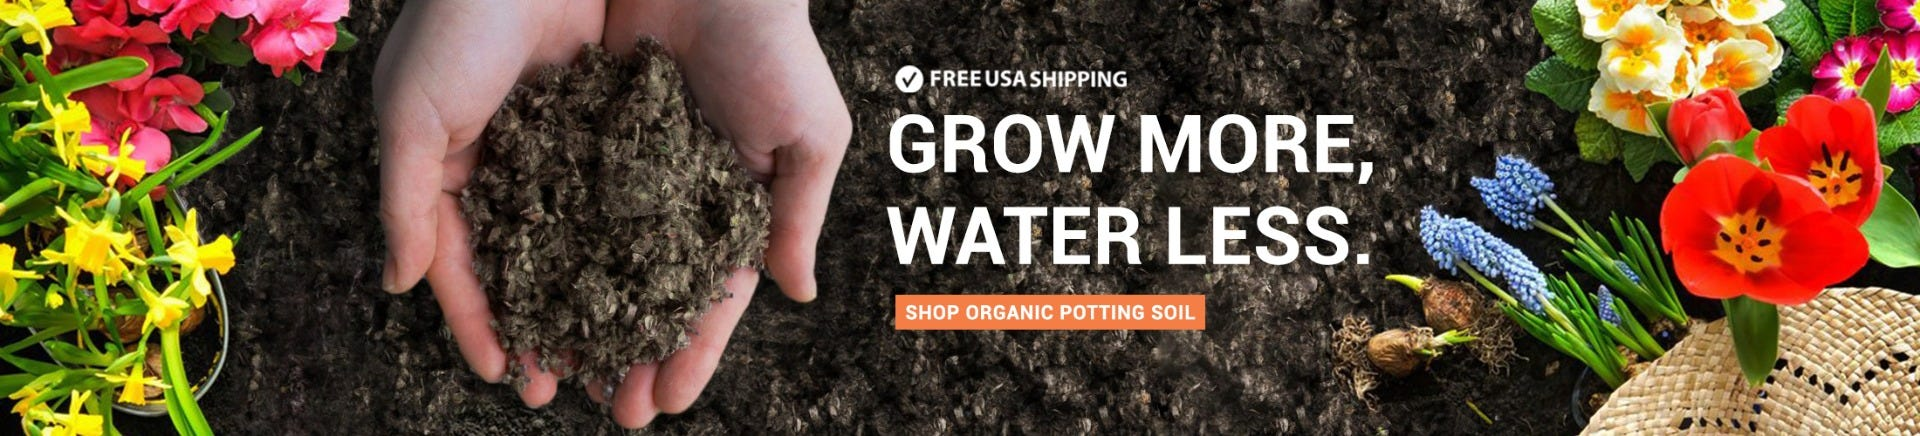 Shop Organic Potting Soil